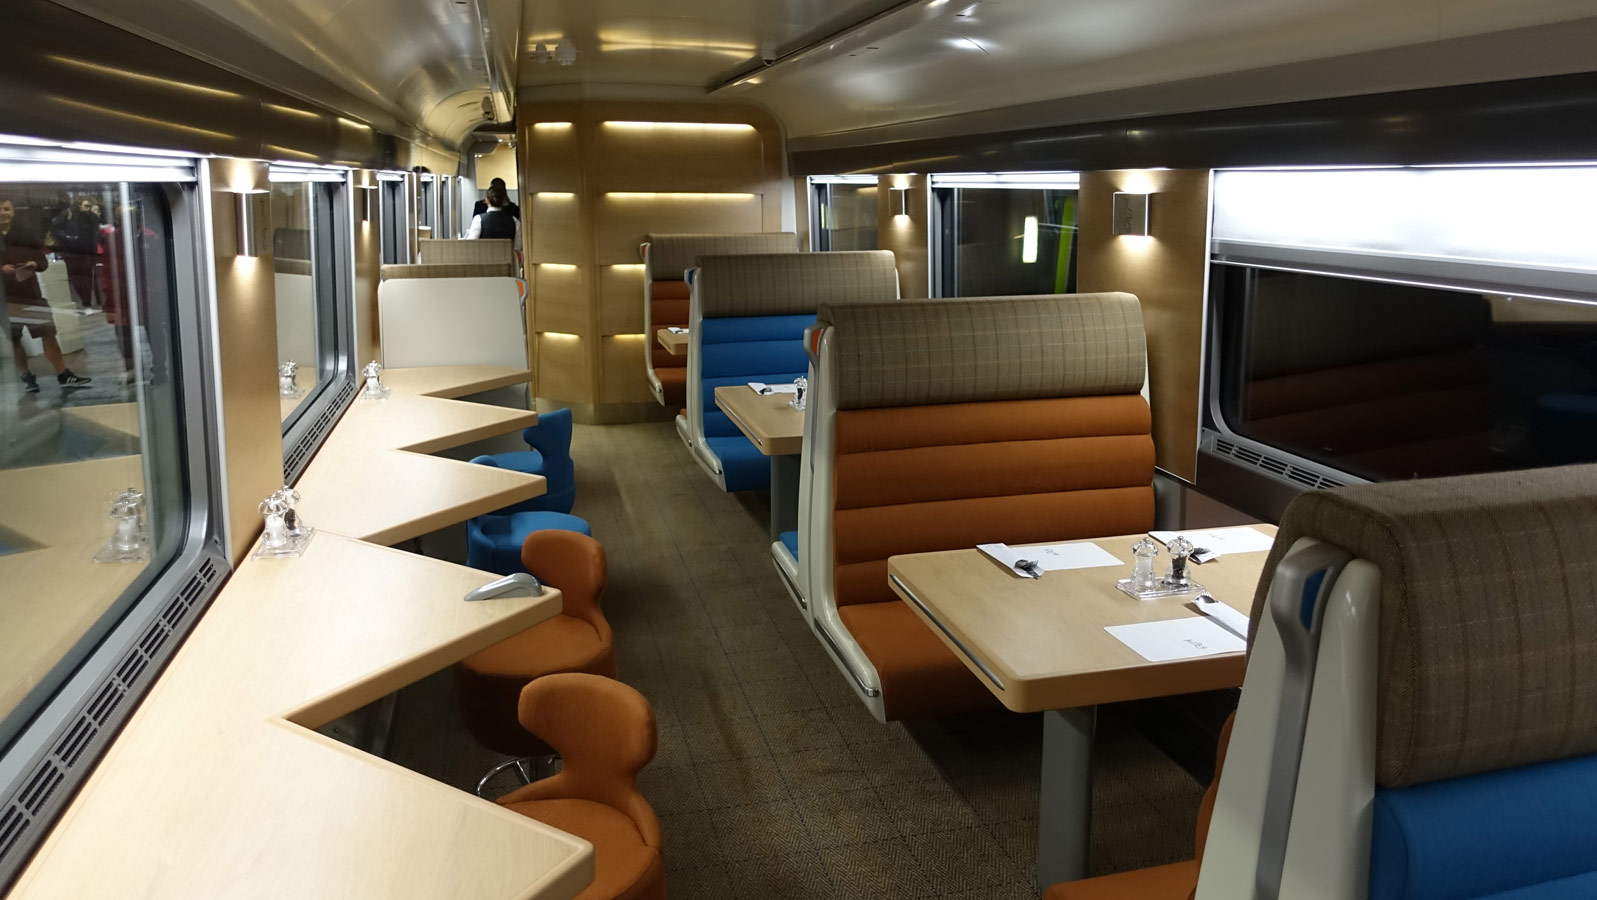 Caledonian Sleeper London To Scotland Tickets Timetable